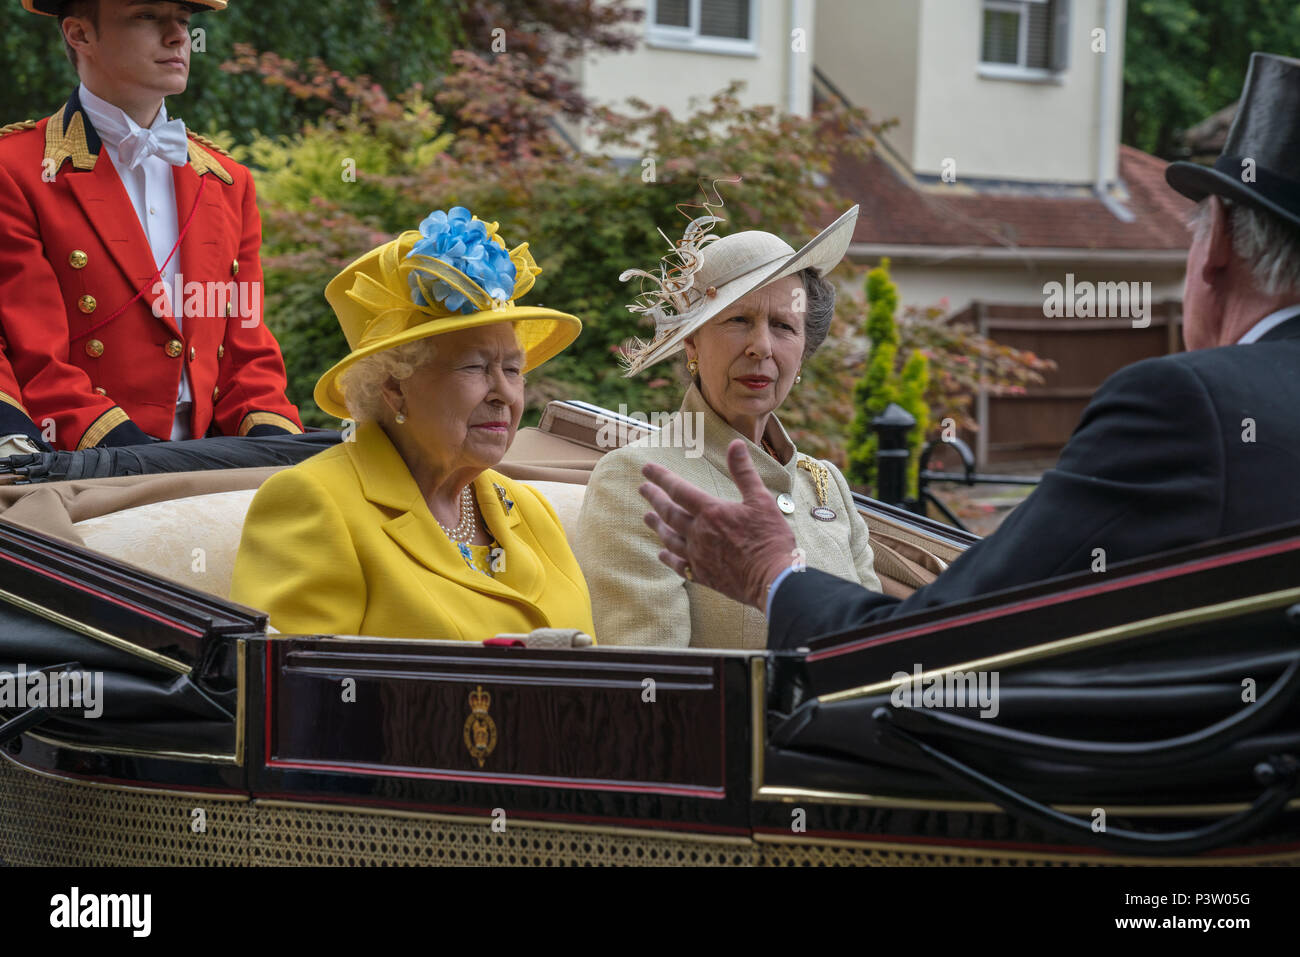 Royal Ascot, Berkshire, UK. 19th Jun, 2018. The Queen and Princess Anne in the Royal Ascot Carriage Procession Credit: Chris Miller/Alamy Live News - Stock Image